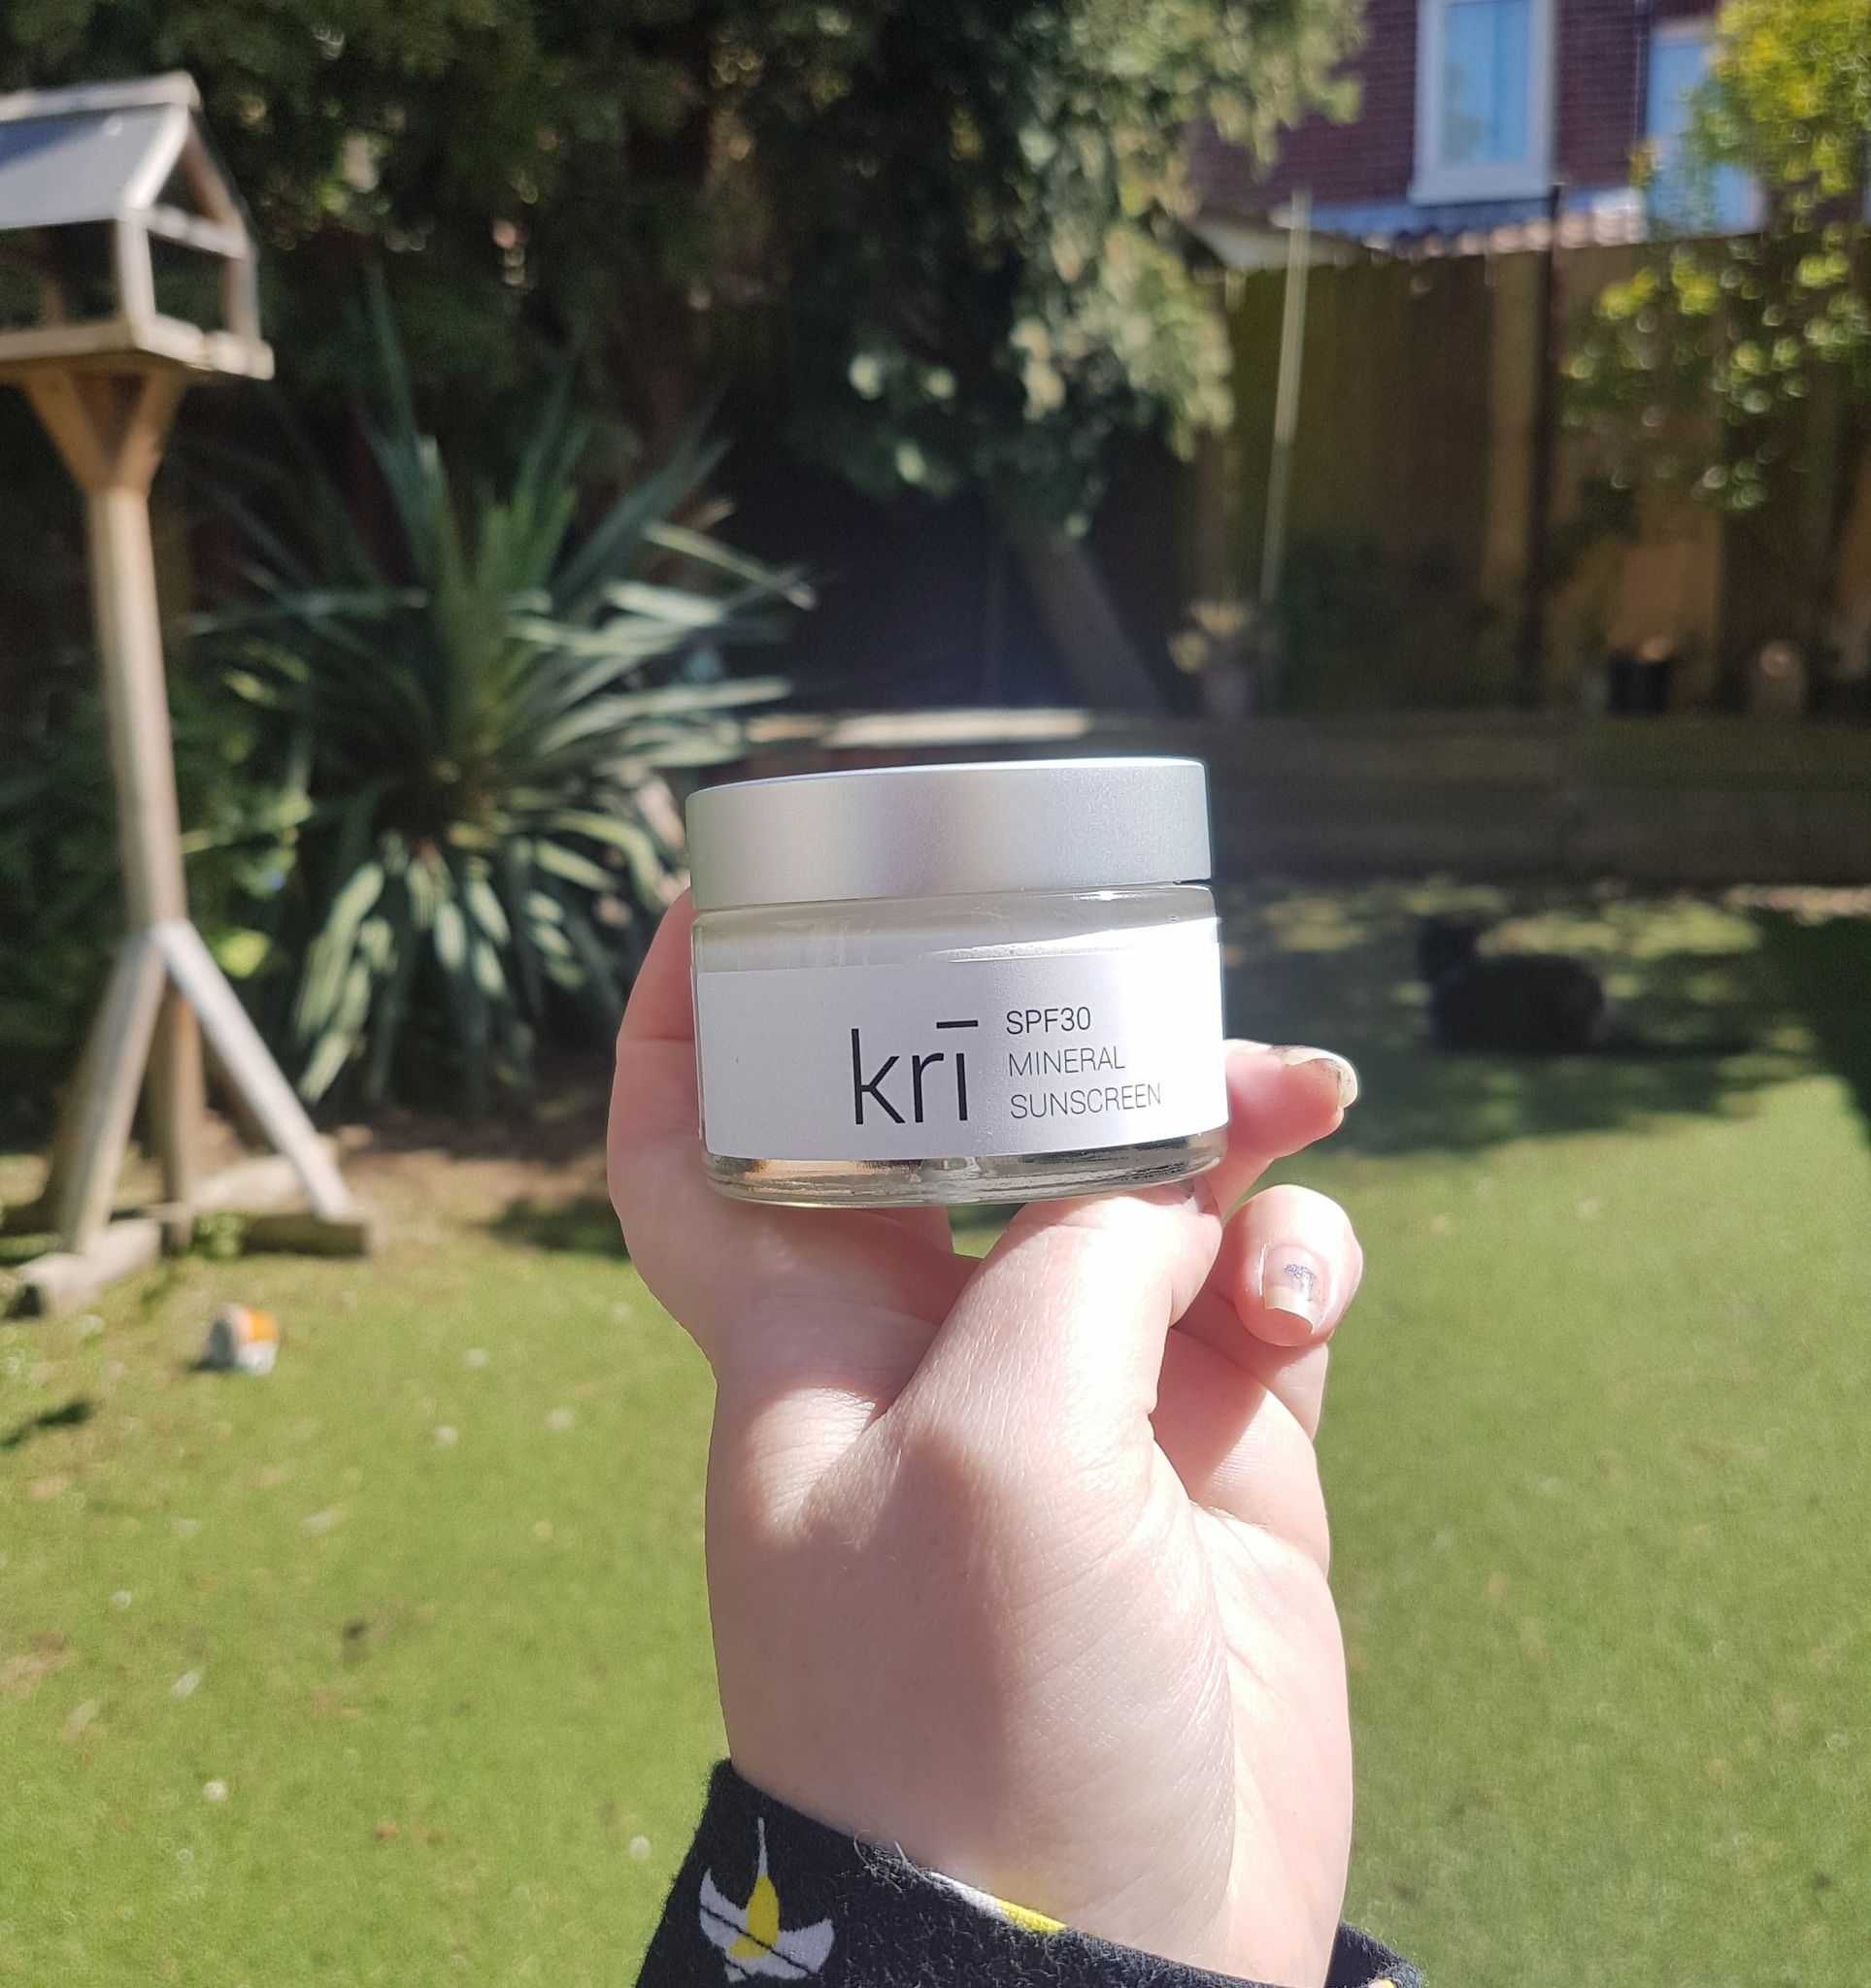 glass jar of reef safe SPF30 mineral sunscreen from Kri Skincare held up in a hand outside in front of a bird table and trees